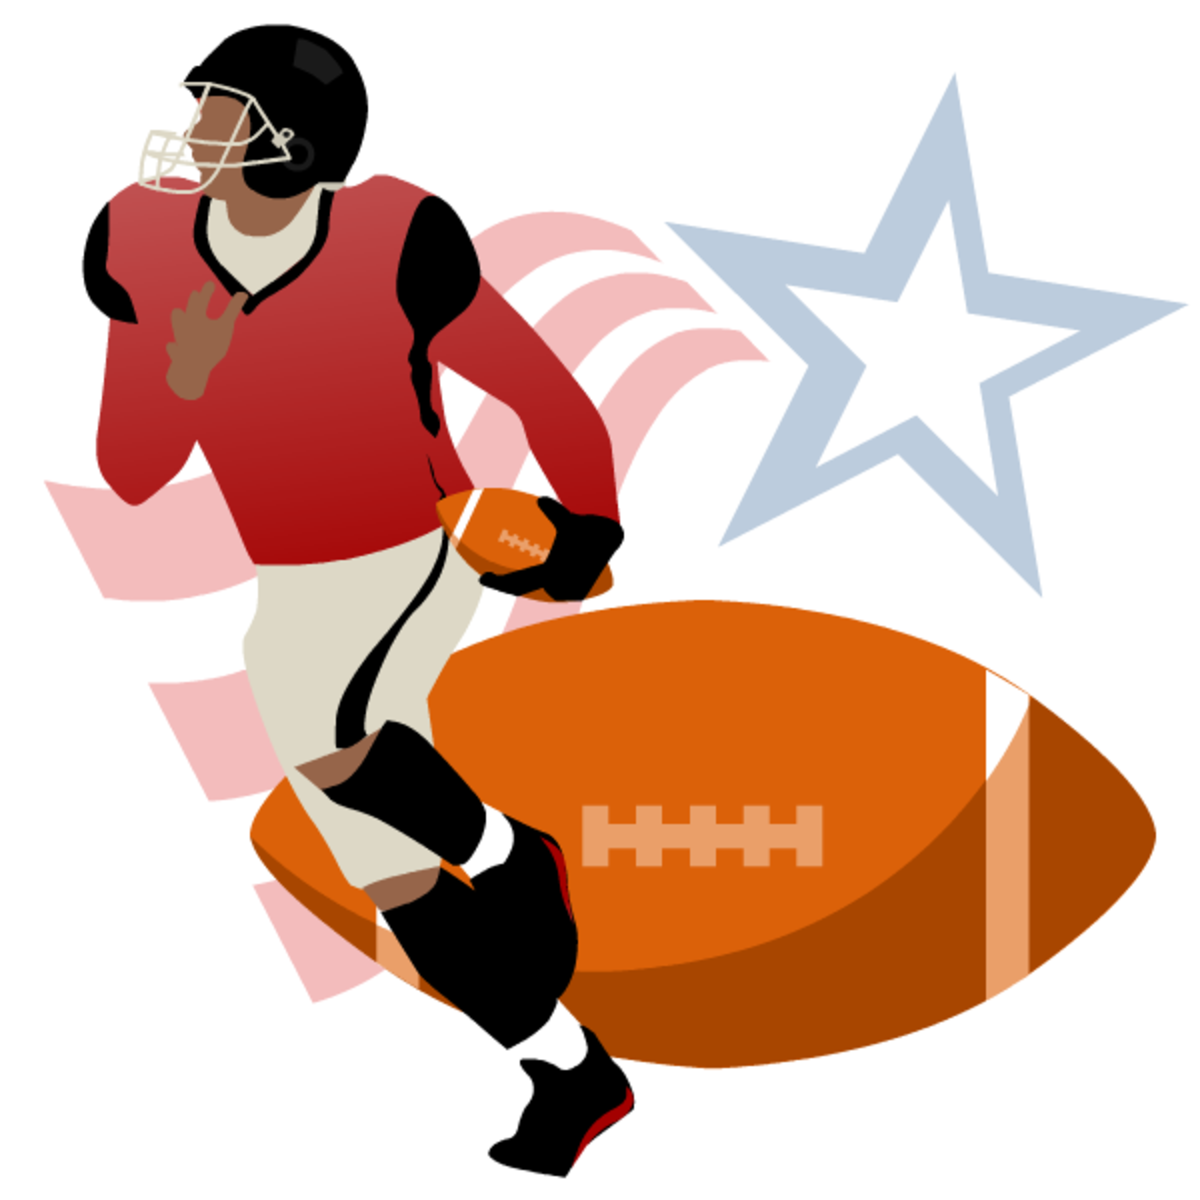 Please scroll down to see all the free football clip art